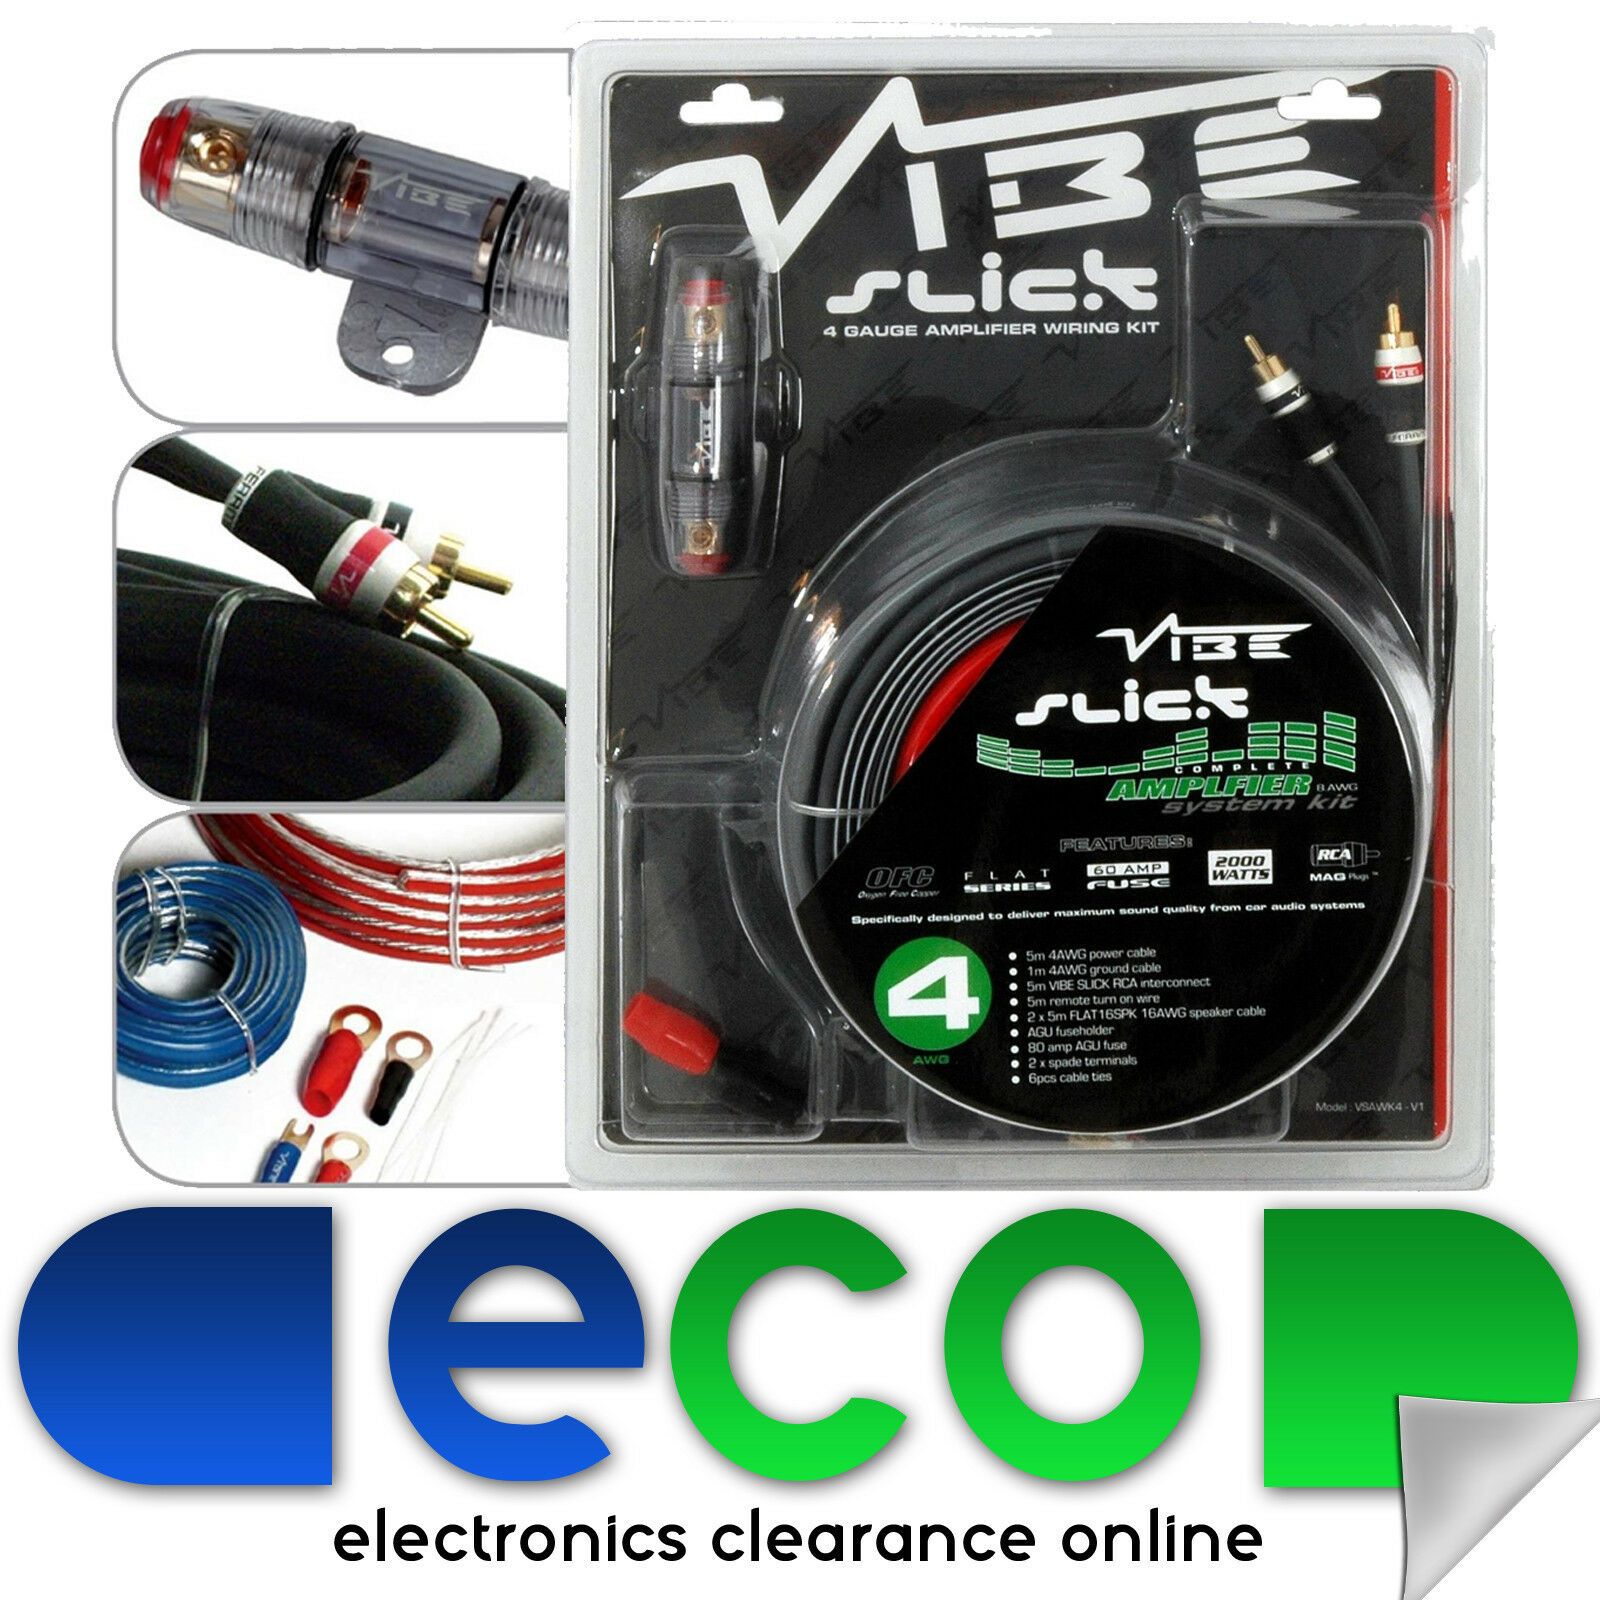 Vibe Slick Vsawk8 Upto 1500 Watts 8 Awg Gauge Car Amplifier Amp Sub Audio Wiring Kit 1 Of 1free Shipping See More